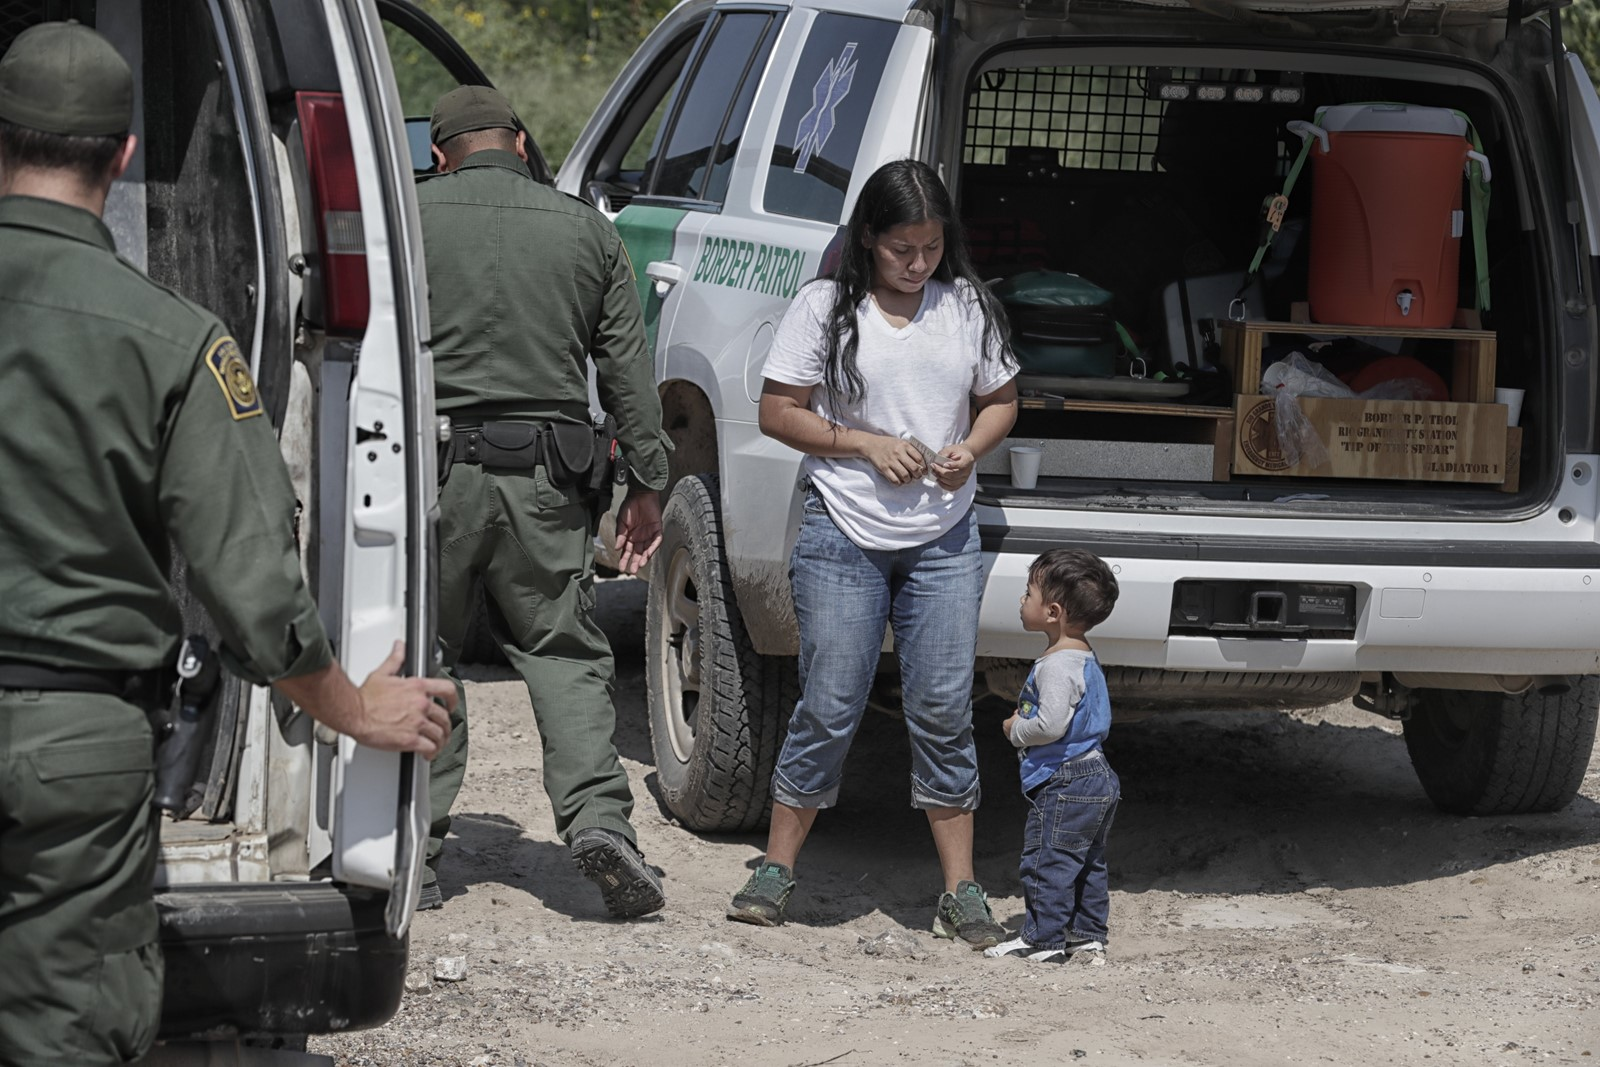 Border Patrol agents detain a Honduran mother and son. Distrust between agents and Roma residents is often mutual. — Photograph: Robert Gauthier/Los Angeles Times.